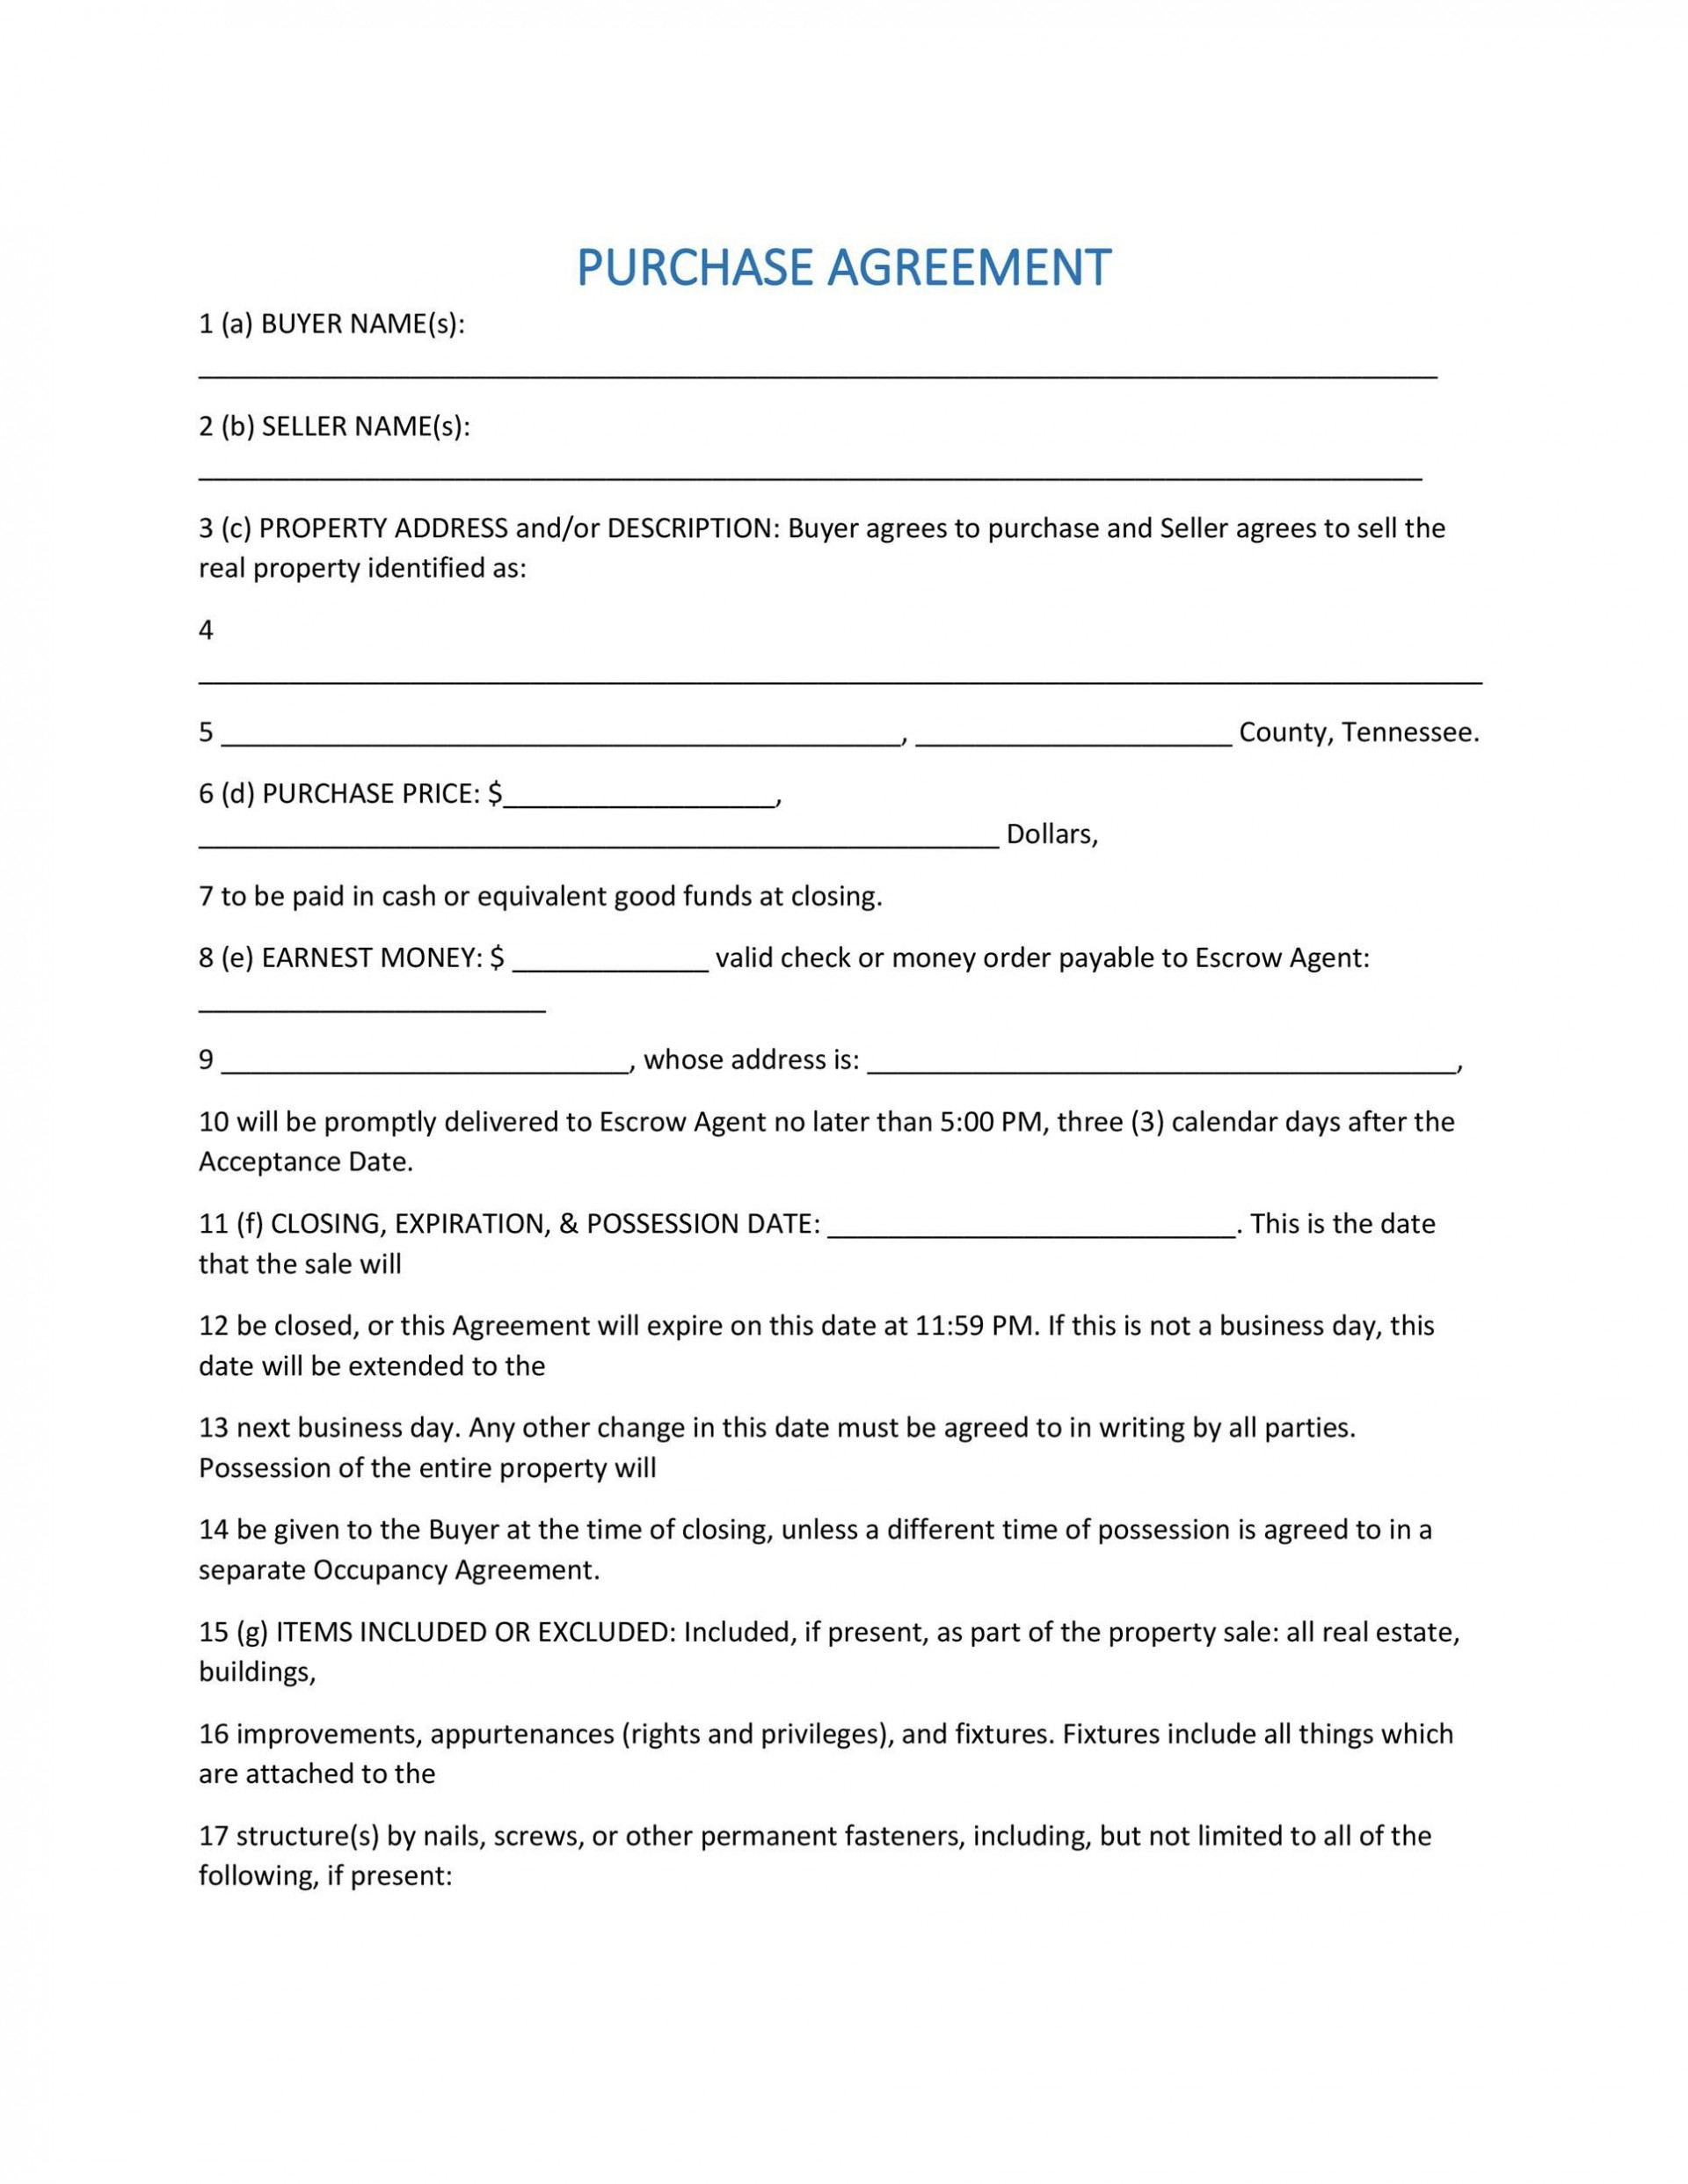 005 Stunning Buy Sell Agreement Template For Home High Resolution  Purchase1920